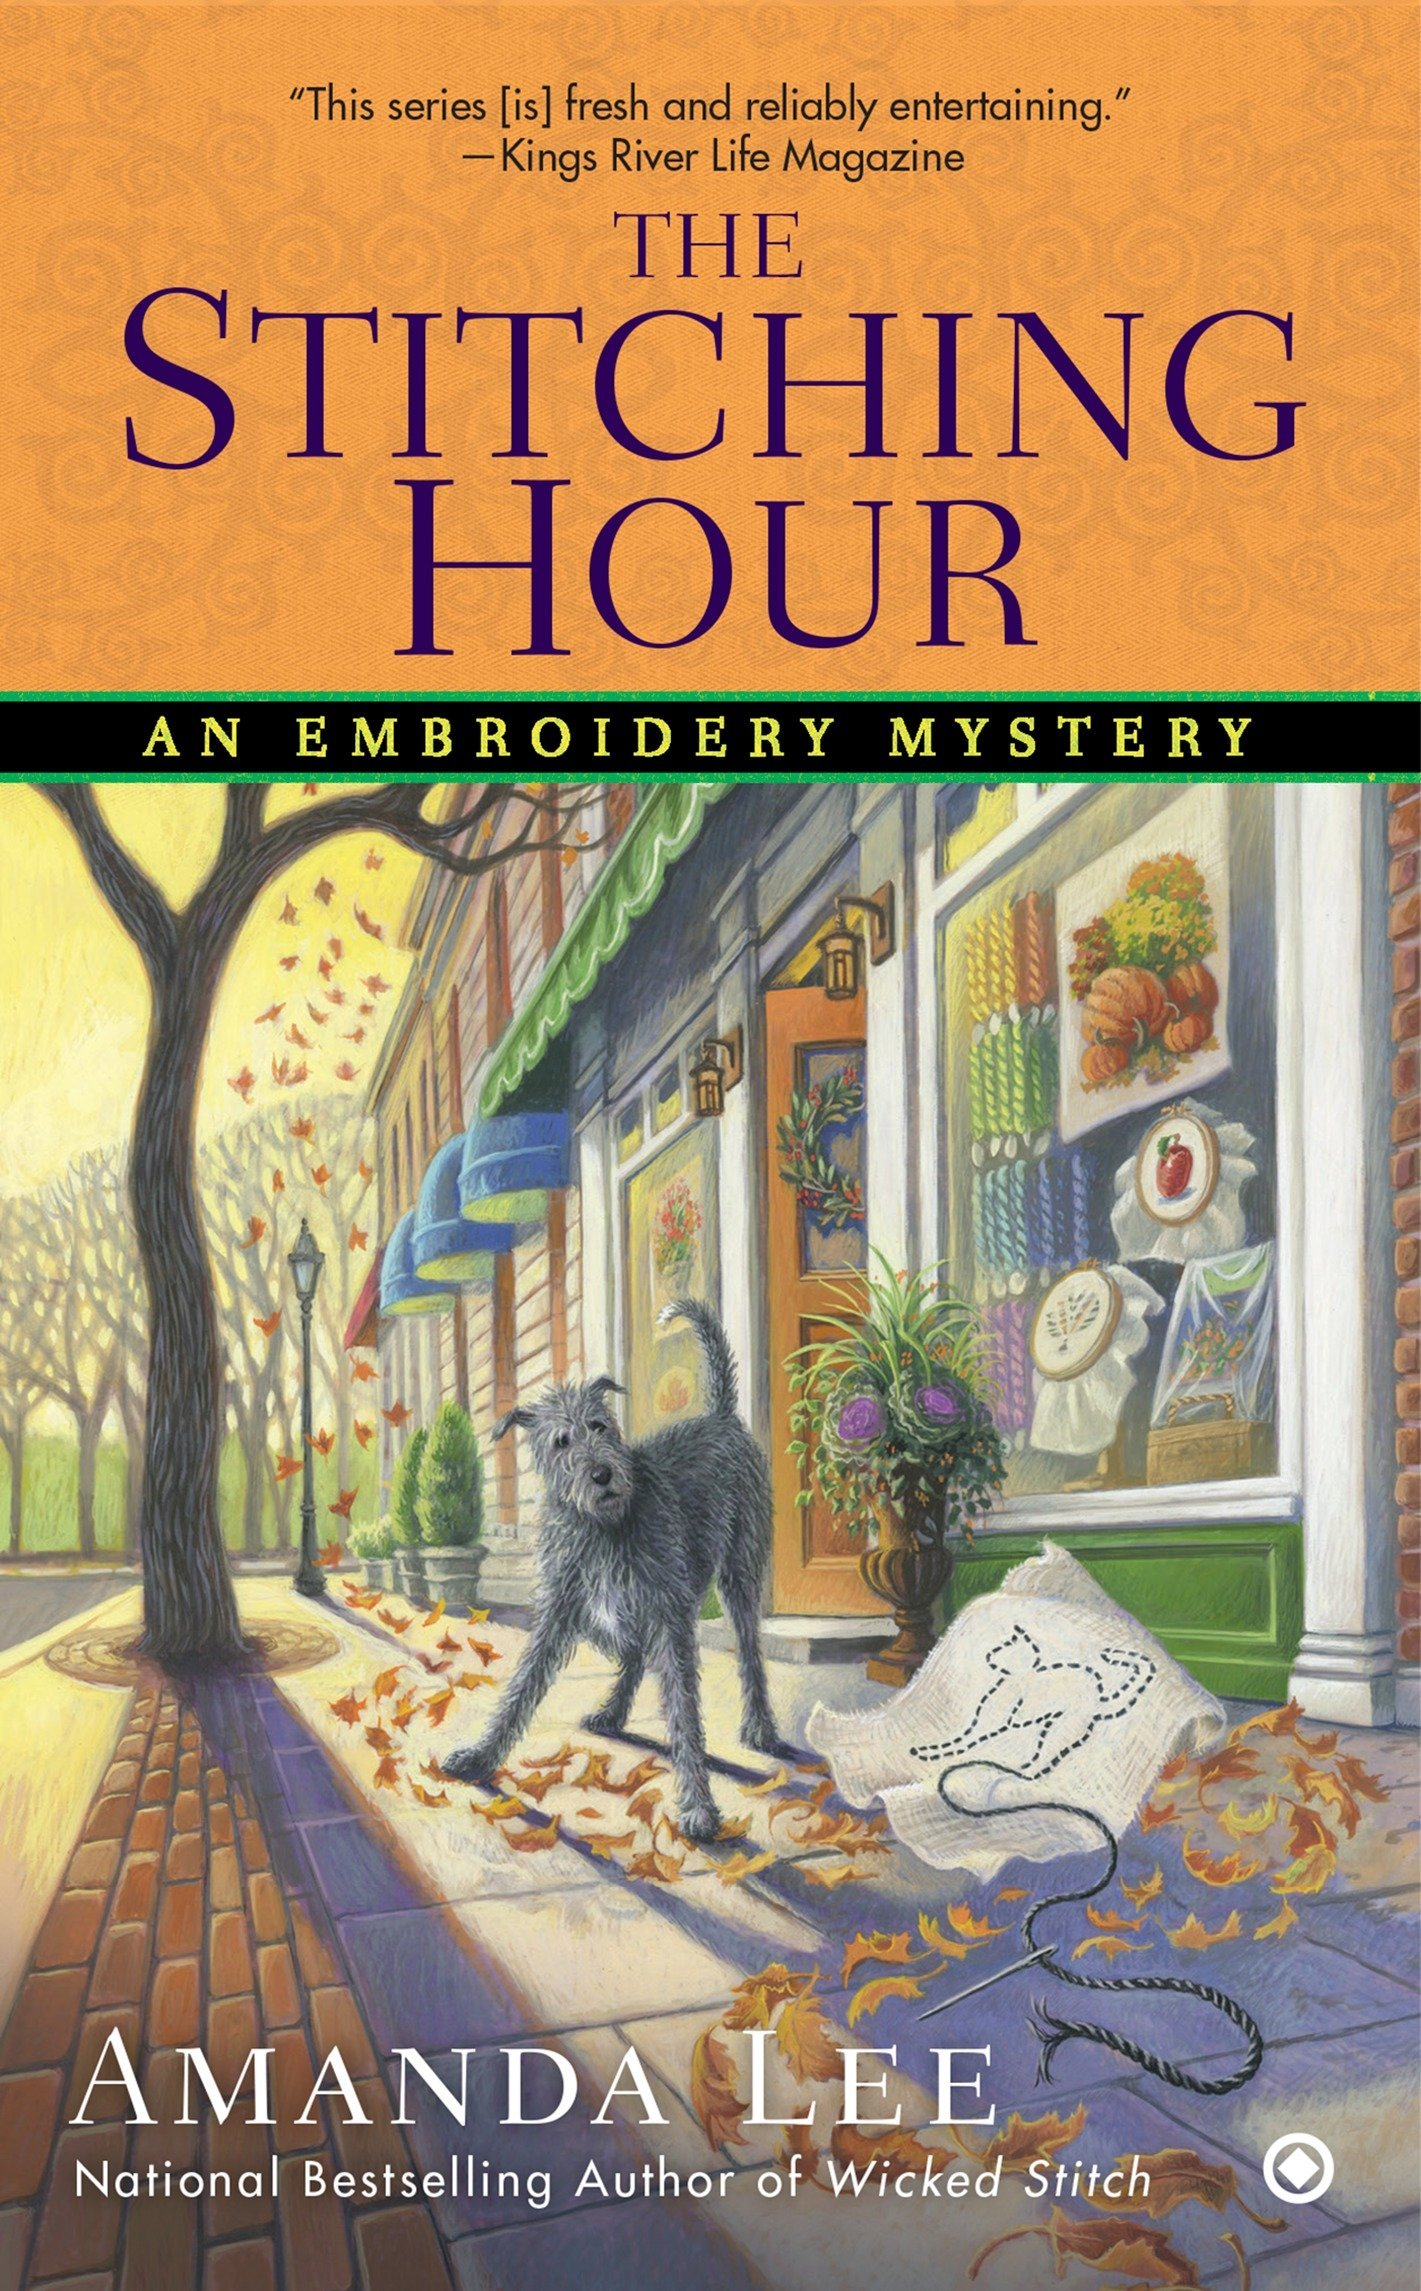 Download The Stitching Hour (Embroidery Mystery) PDF